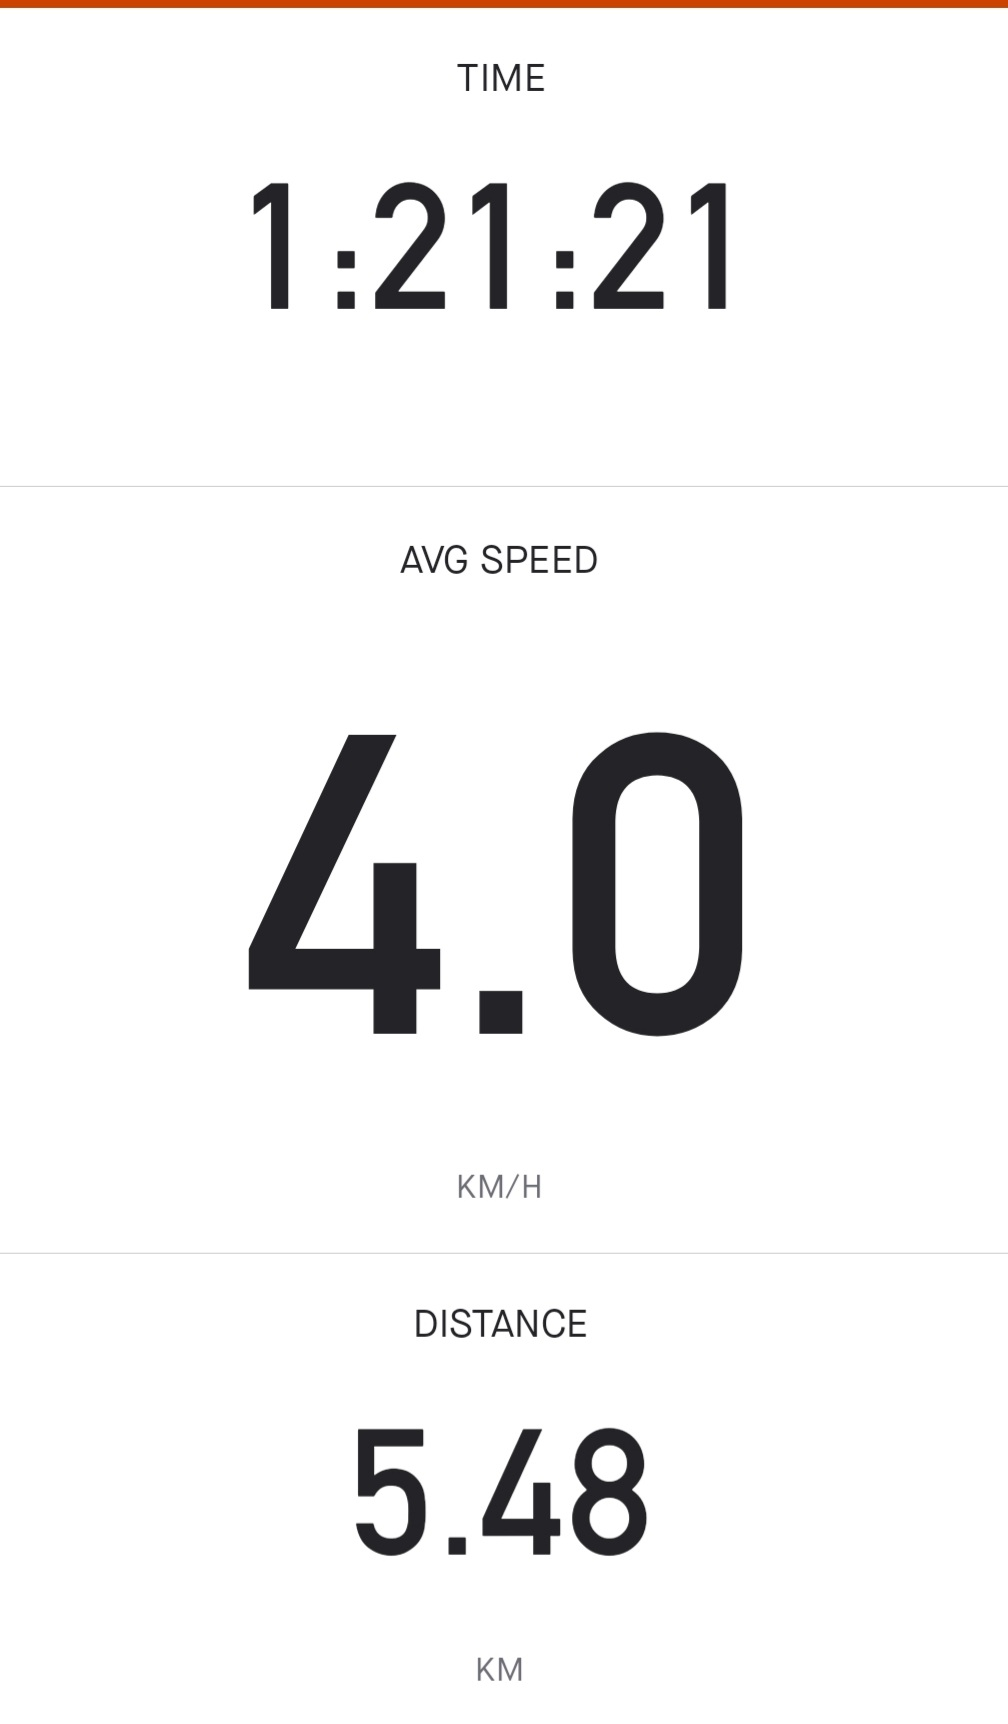 Seriously, it won't take long to score those 100 minutes on the Strava app